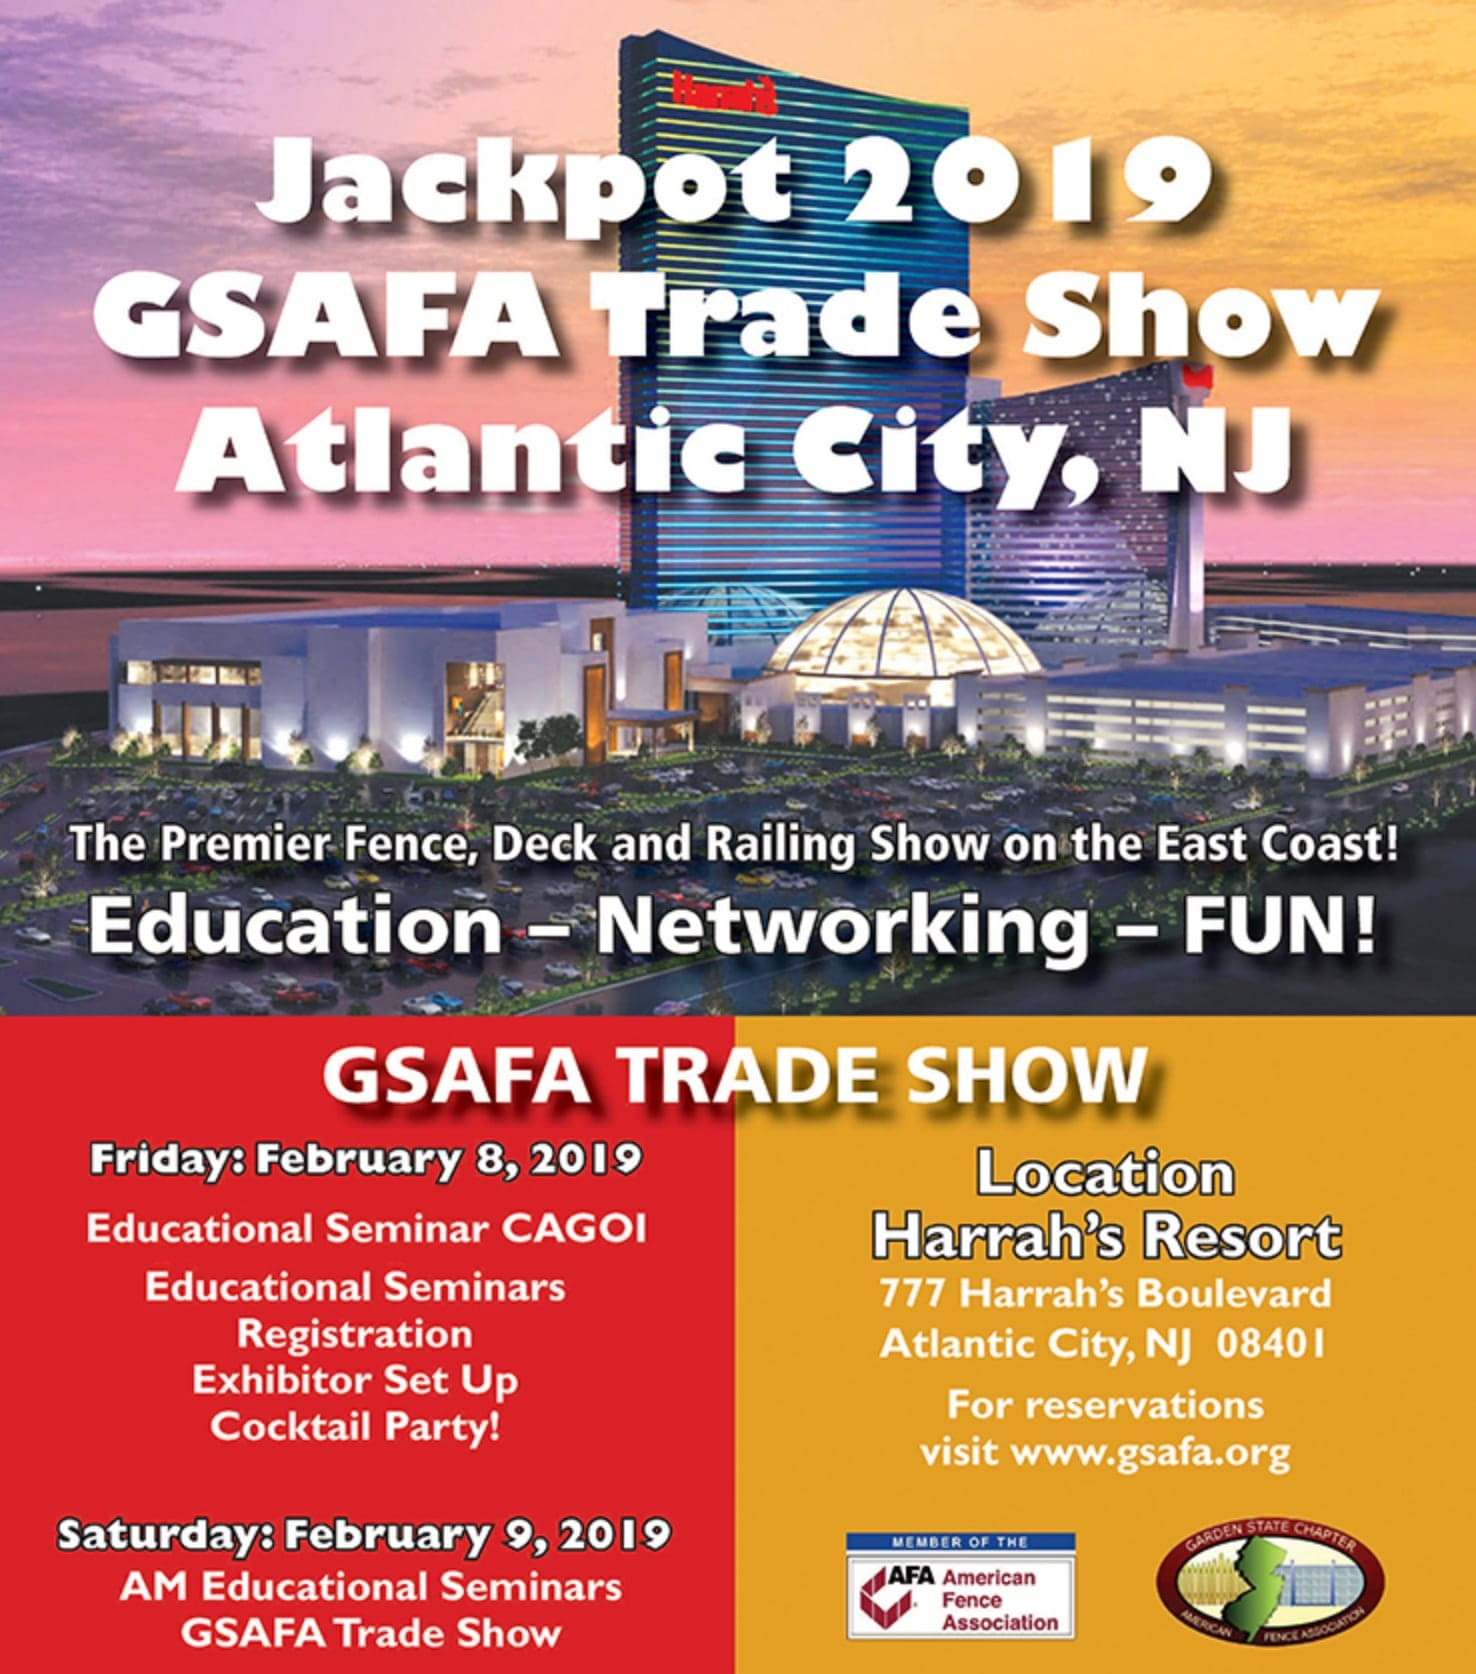 Invitation to the GSAFA Jackpot 2019 Trade Show